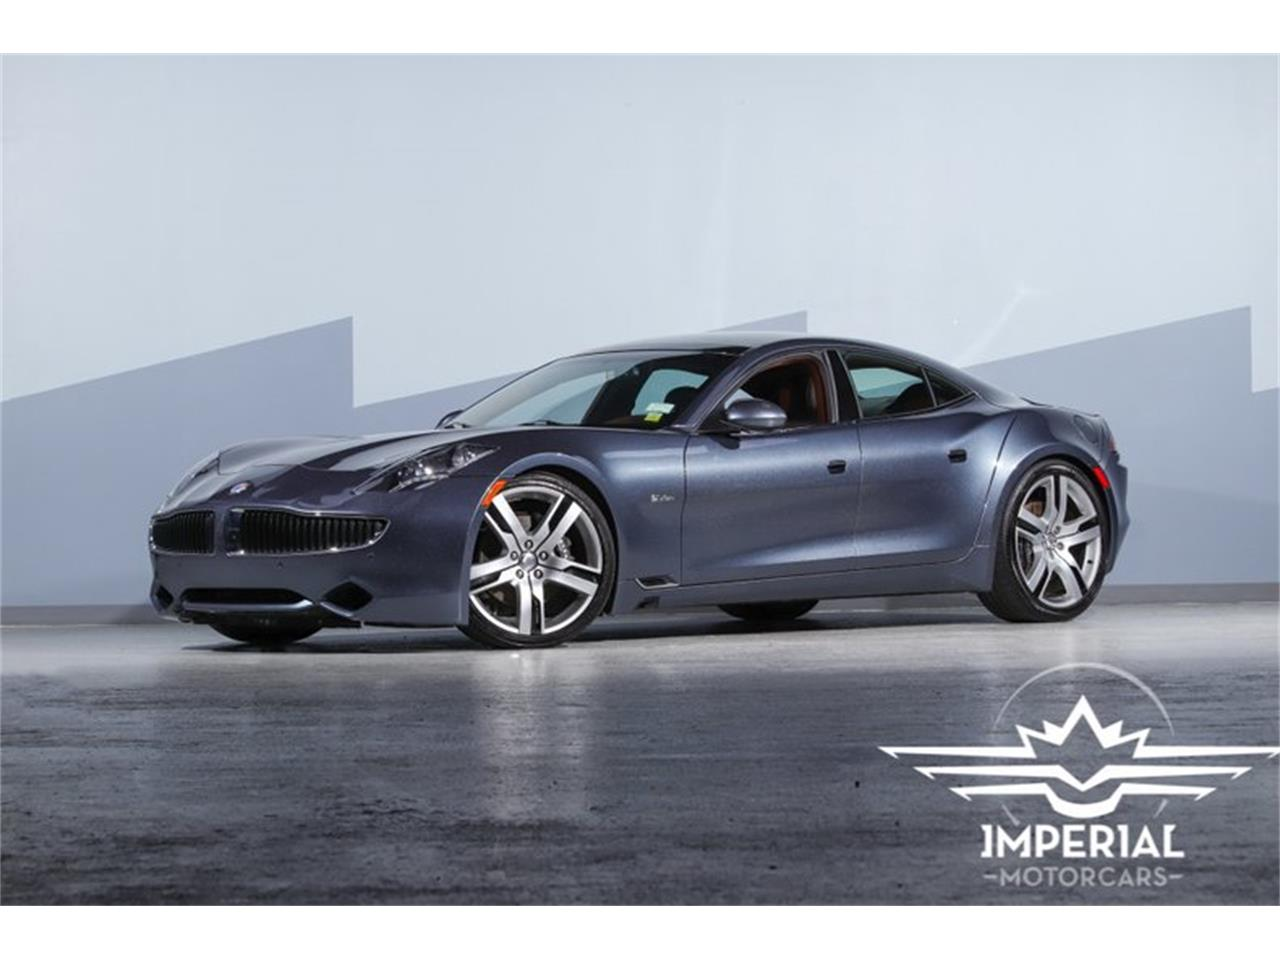 2012 Fisker Karma for sale in New Hyde Park, NY – photo 2